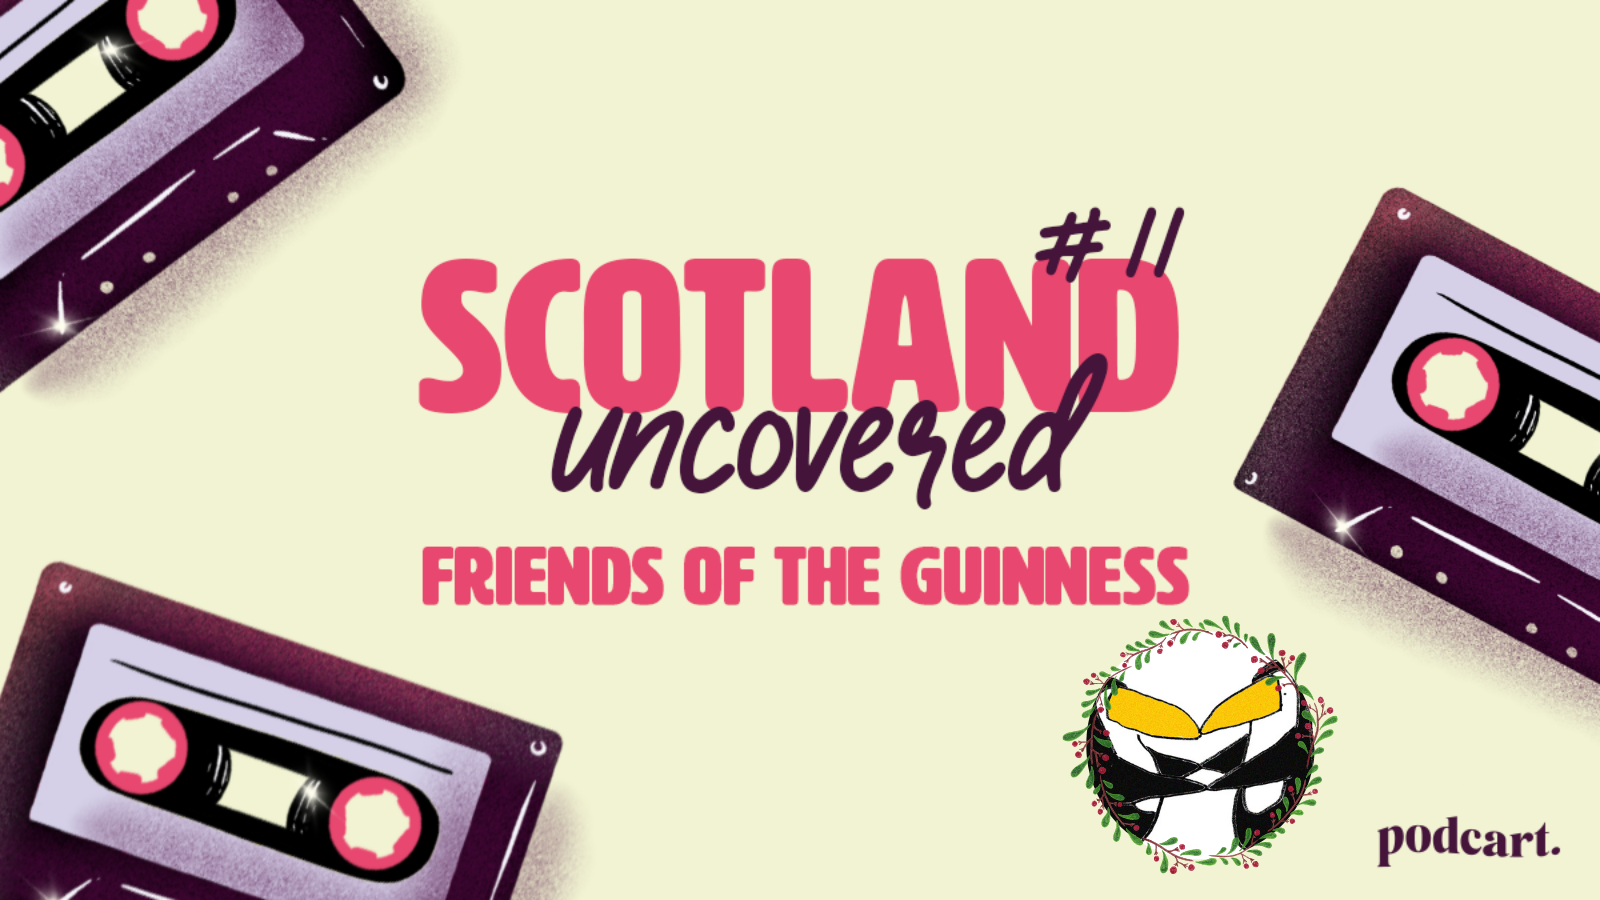 Scotland Uncovered #11: Friends of the Guinness